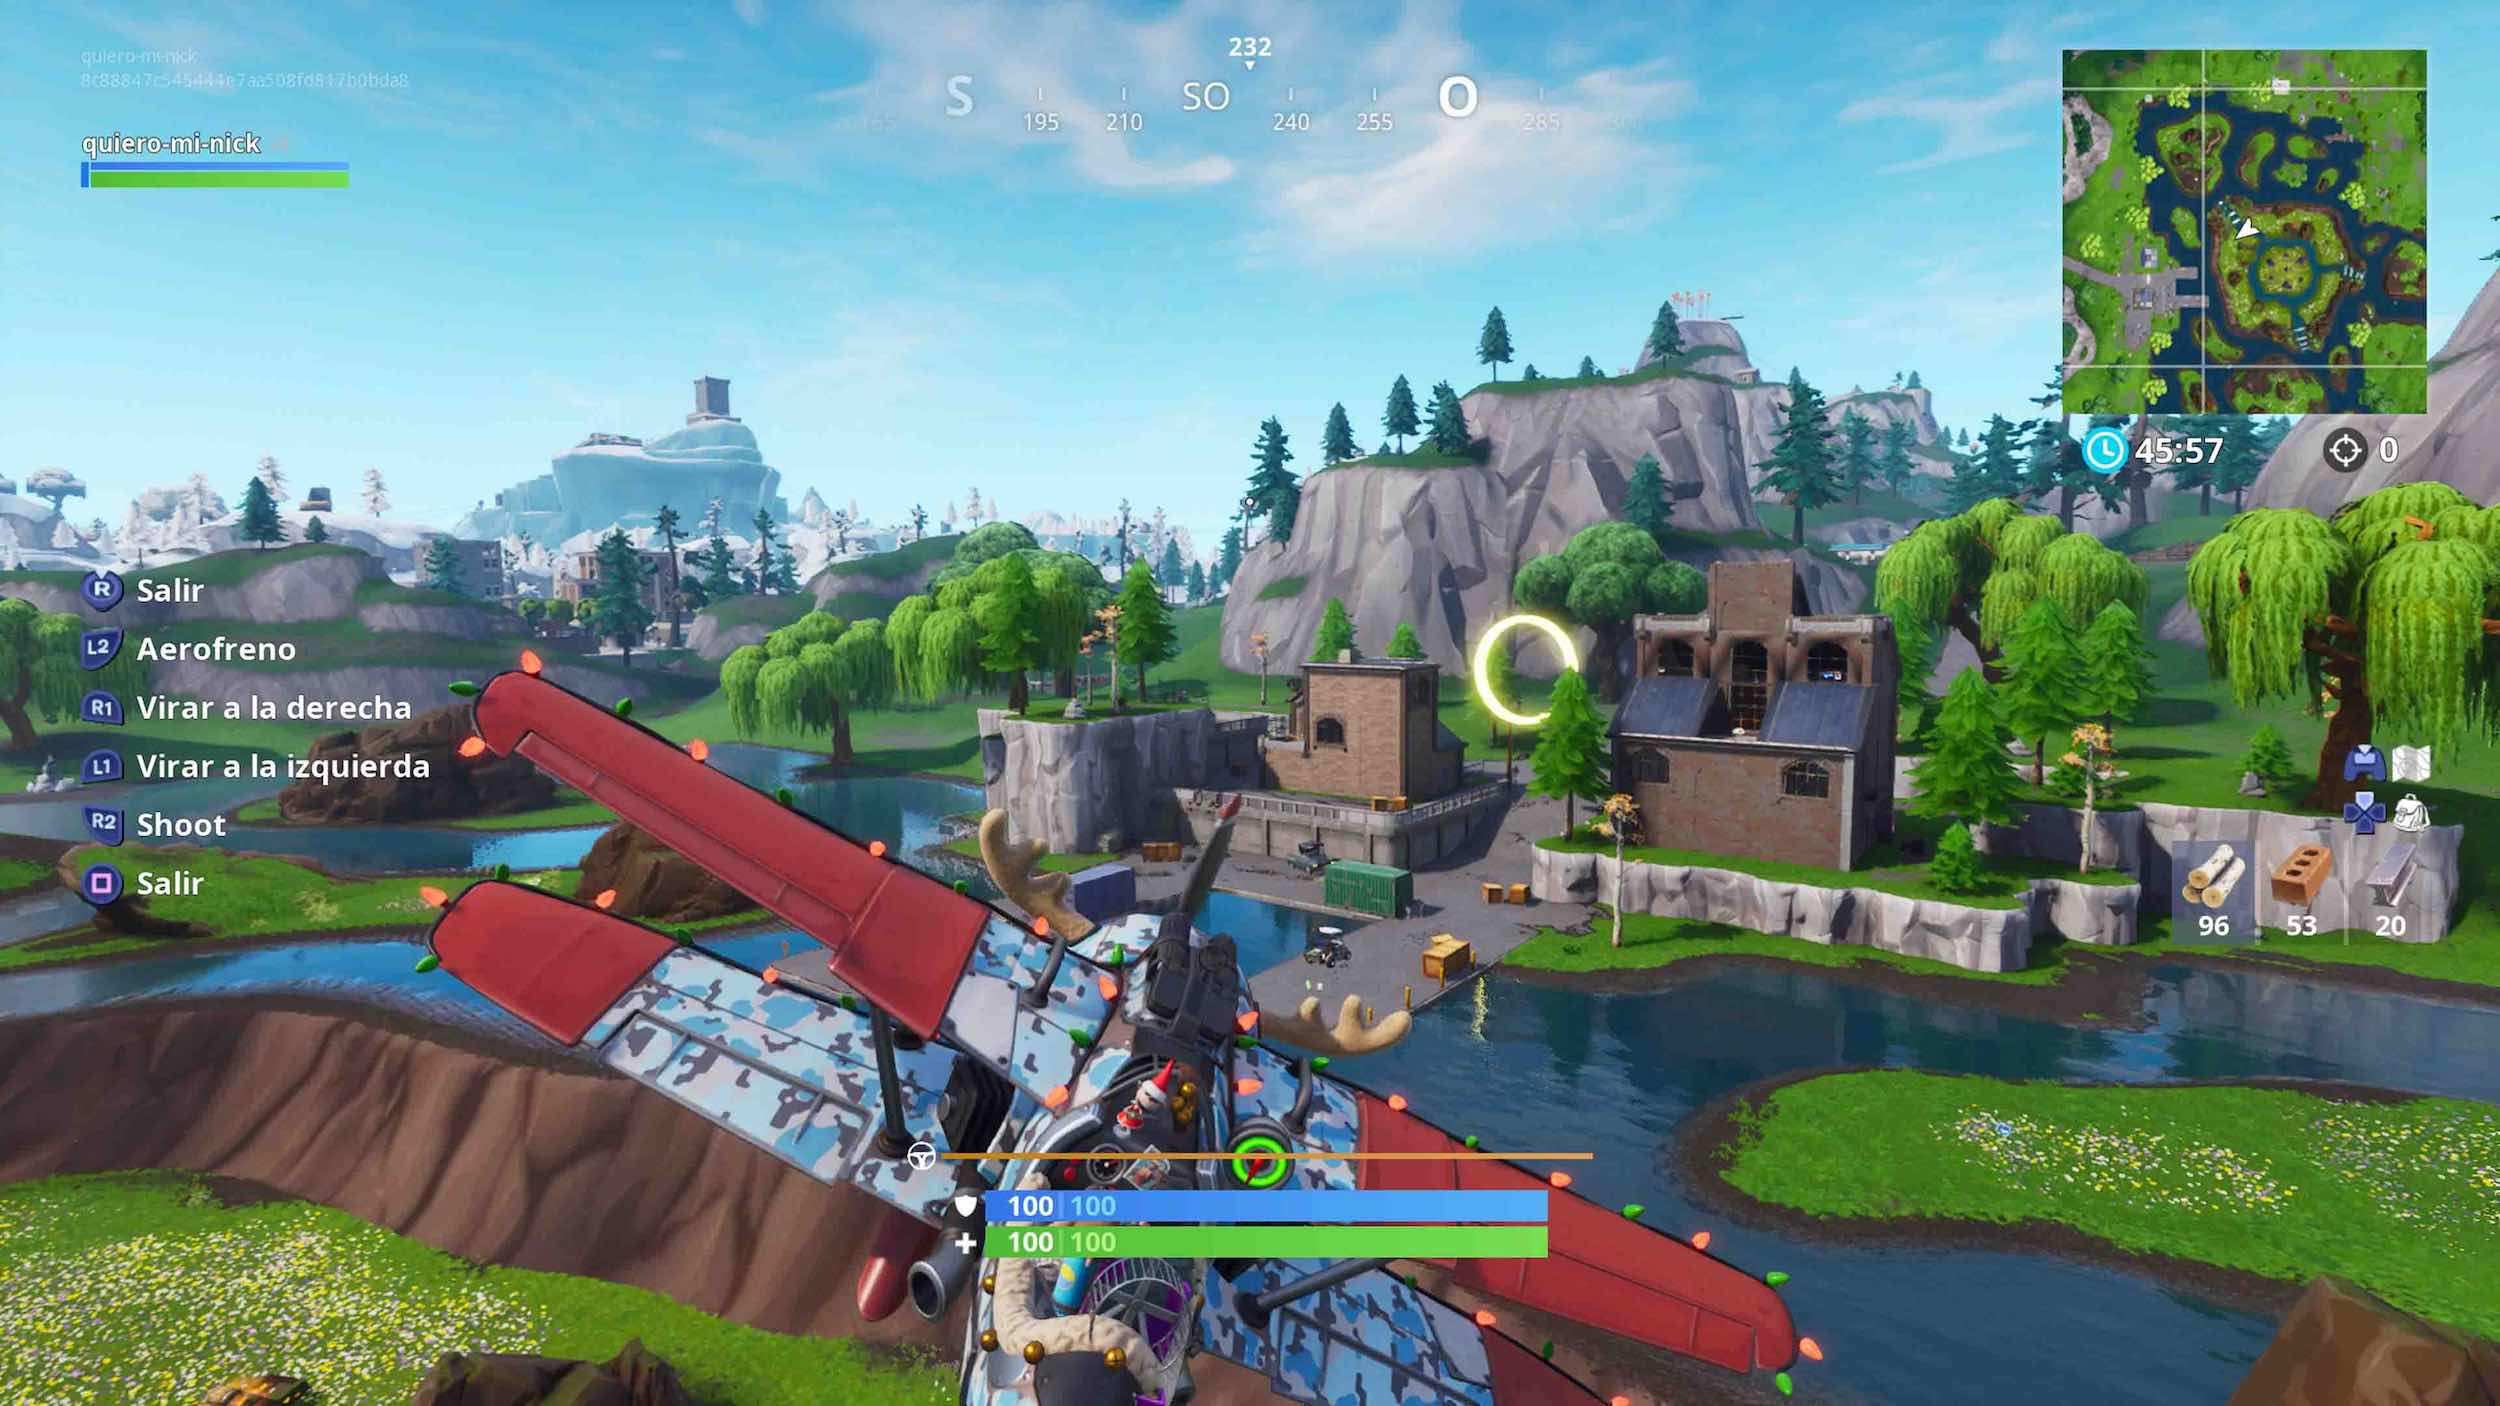 Fly through hoops in Fortnite 14 days from Fortnite